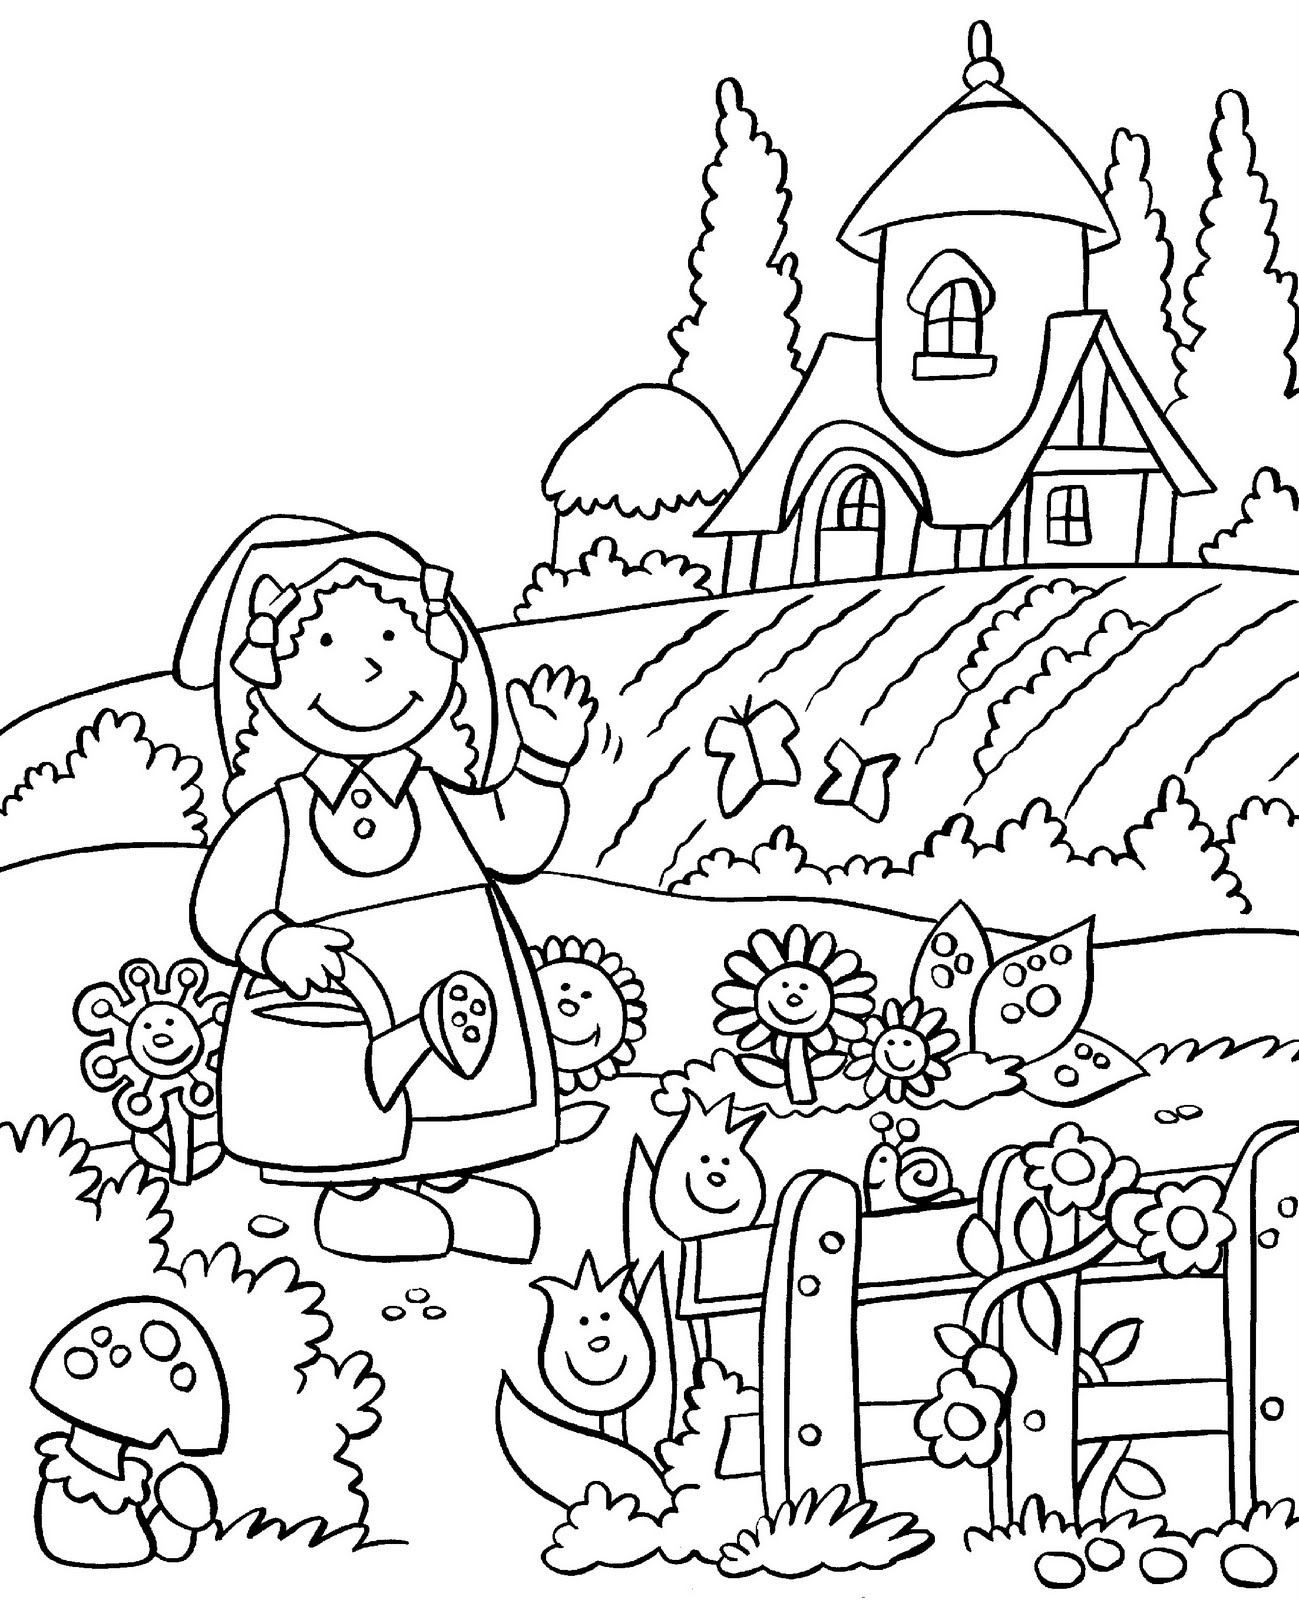 garden coloring pages printable my little house anna and the flower garden coloring pages coloring garden printable pages